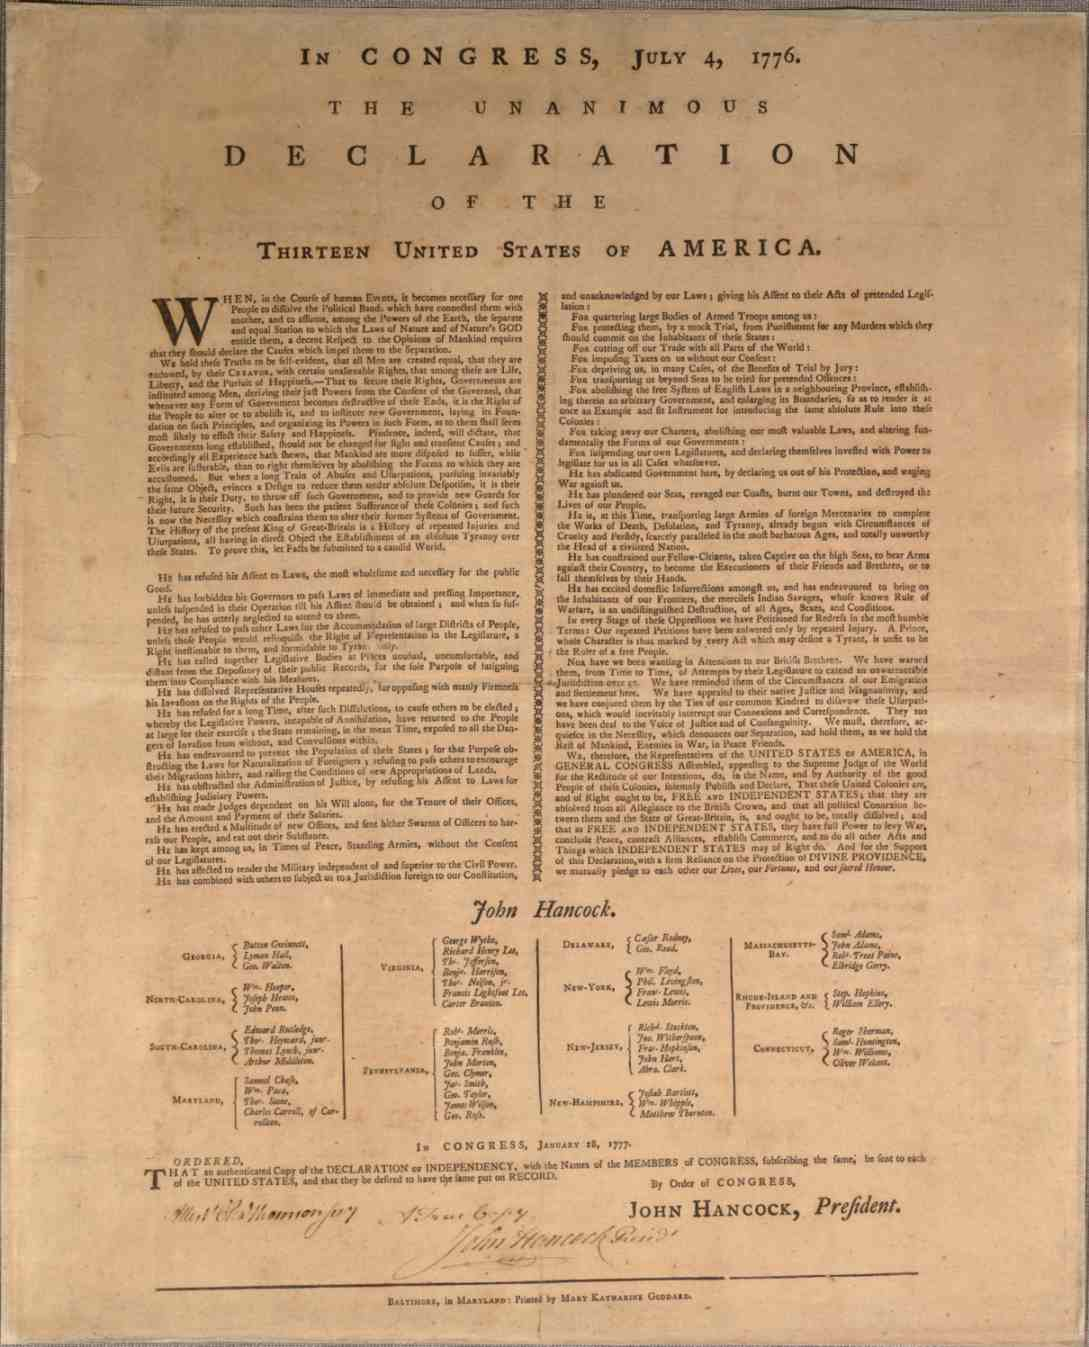 declaration of independence Drafting the declaration of independence in 1776 became the defining event in  thomas jefferson's life drawing on documents, such as the virginia declaration .